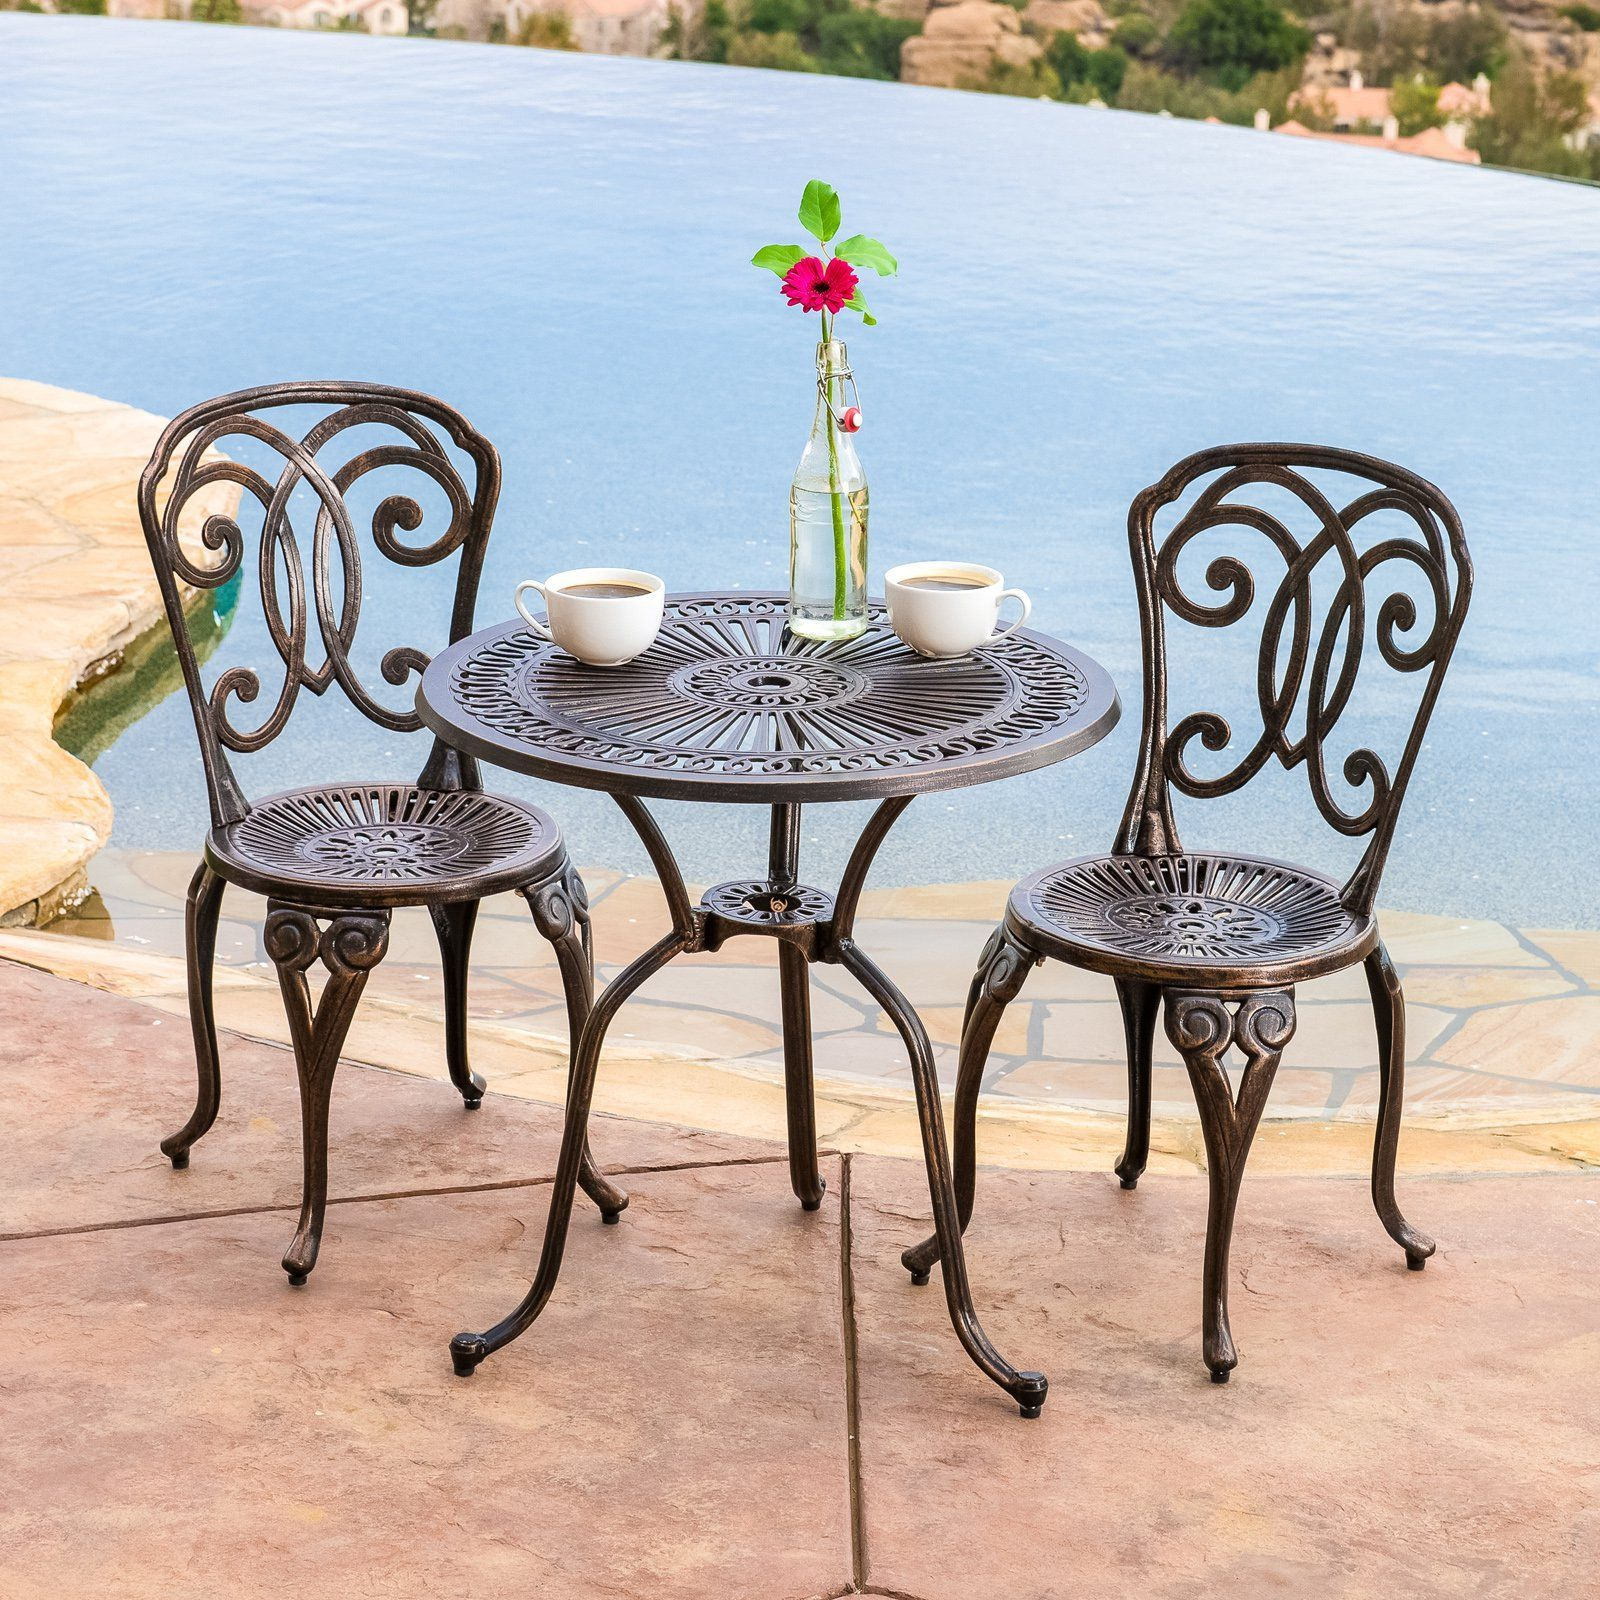 Outdoor best selling home decor furniture ryder aluminum 3 piece round bistro set 238798